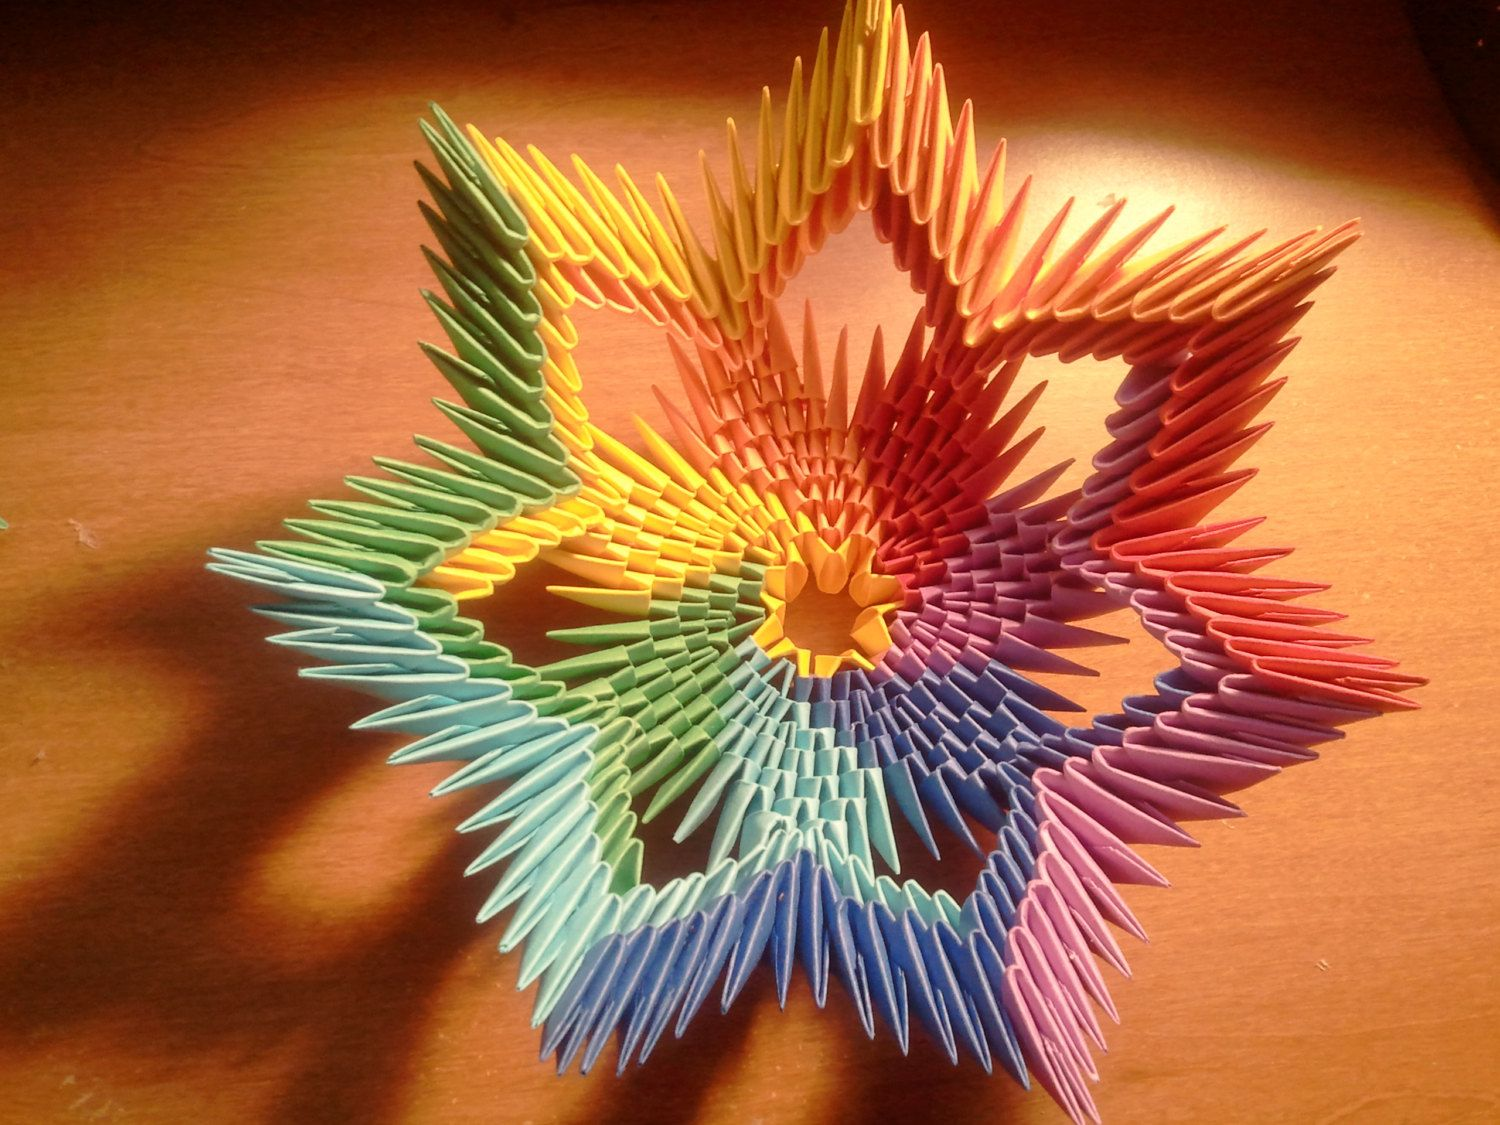 MAKE YOUR OWN DIY 3D ORIGAMI HEART WALL HANGING FOR VALENTINES DAY ... | 1125x1500